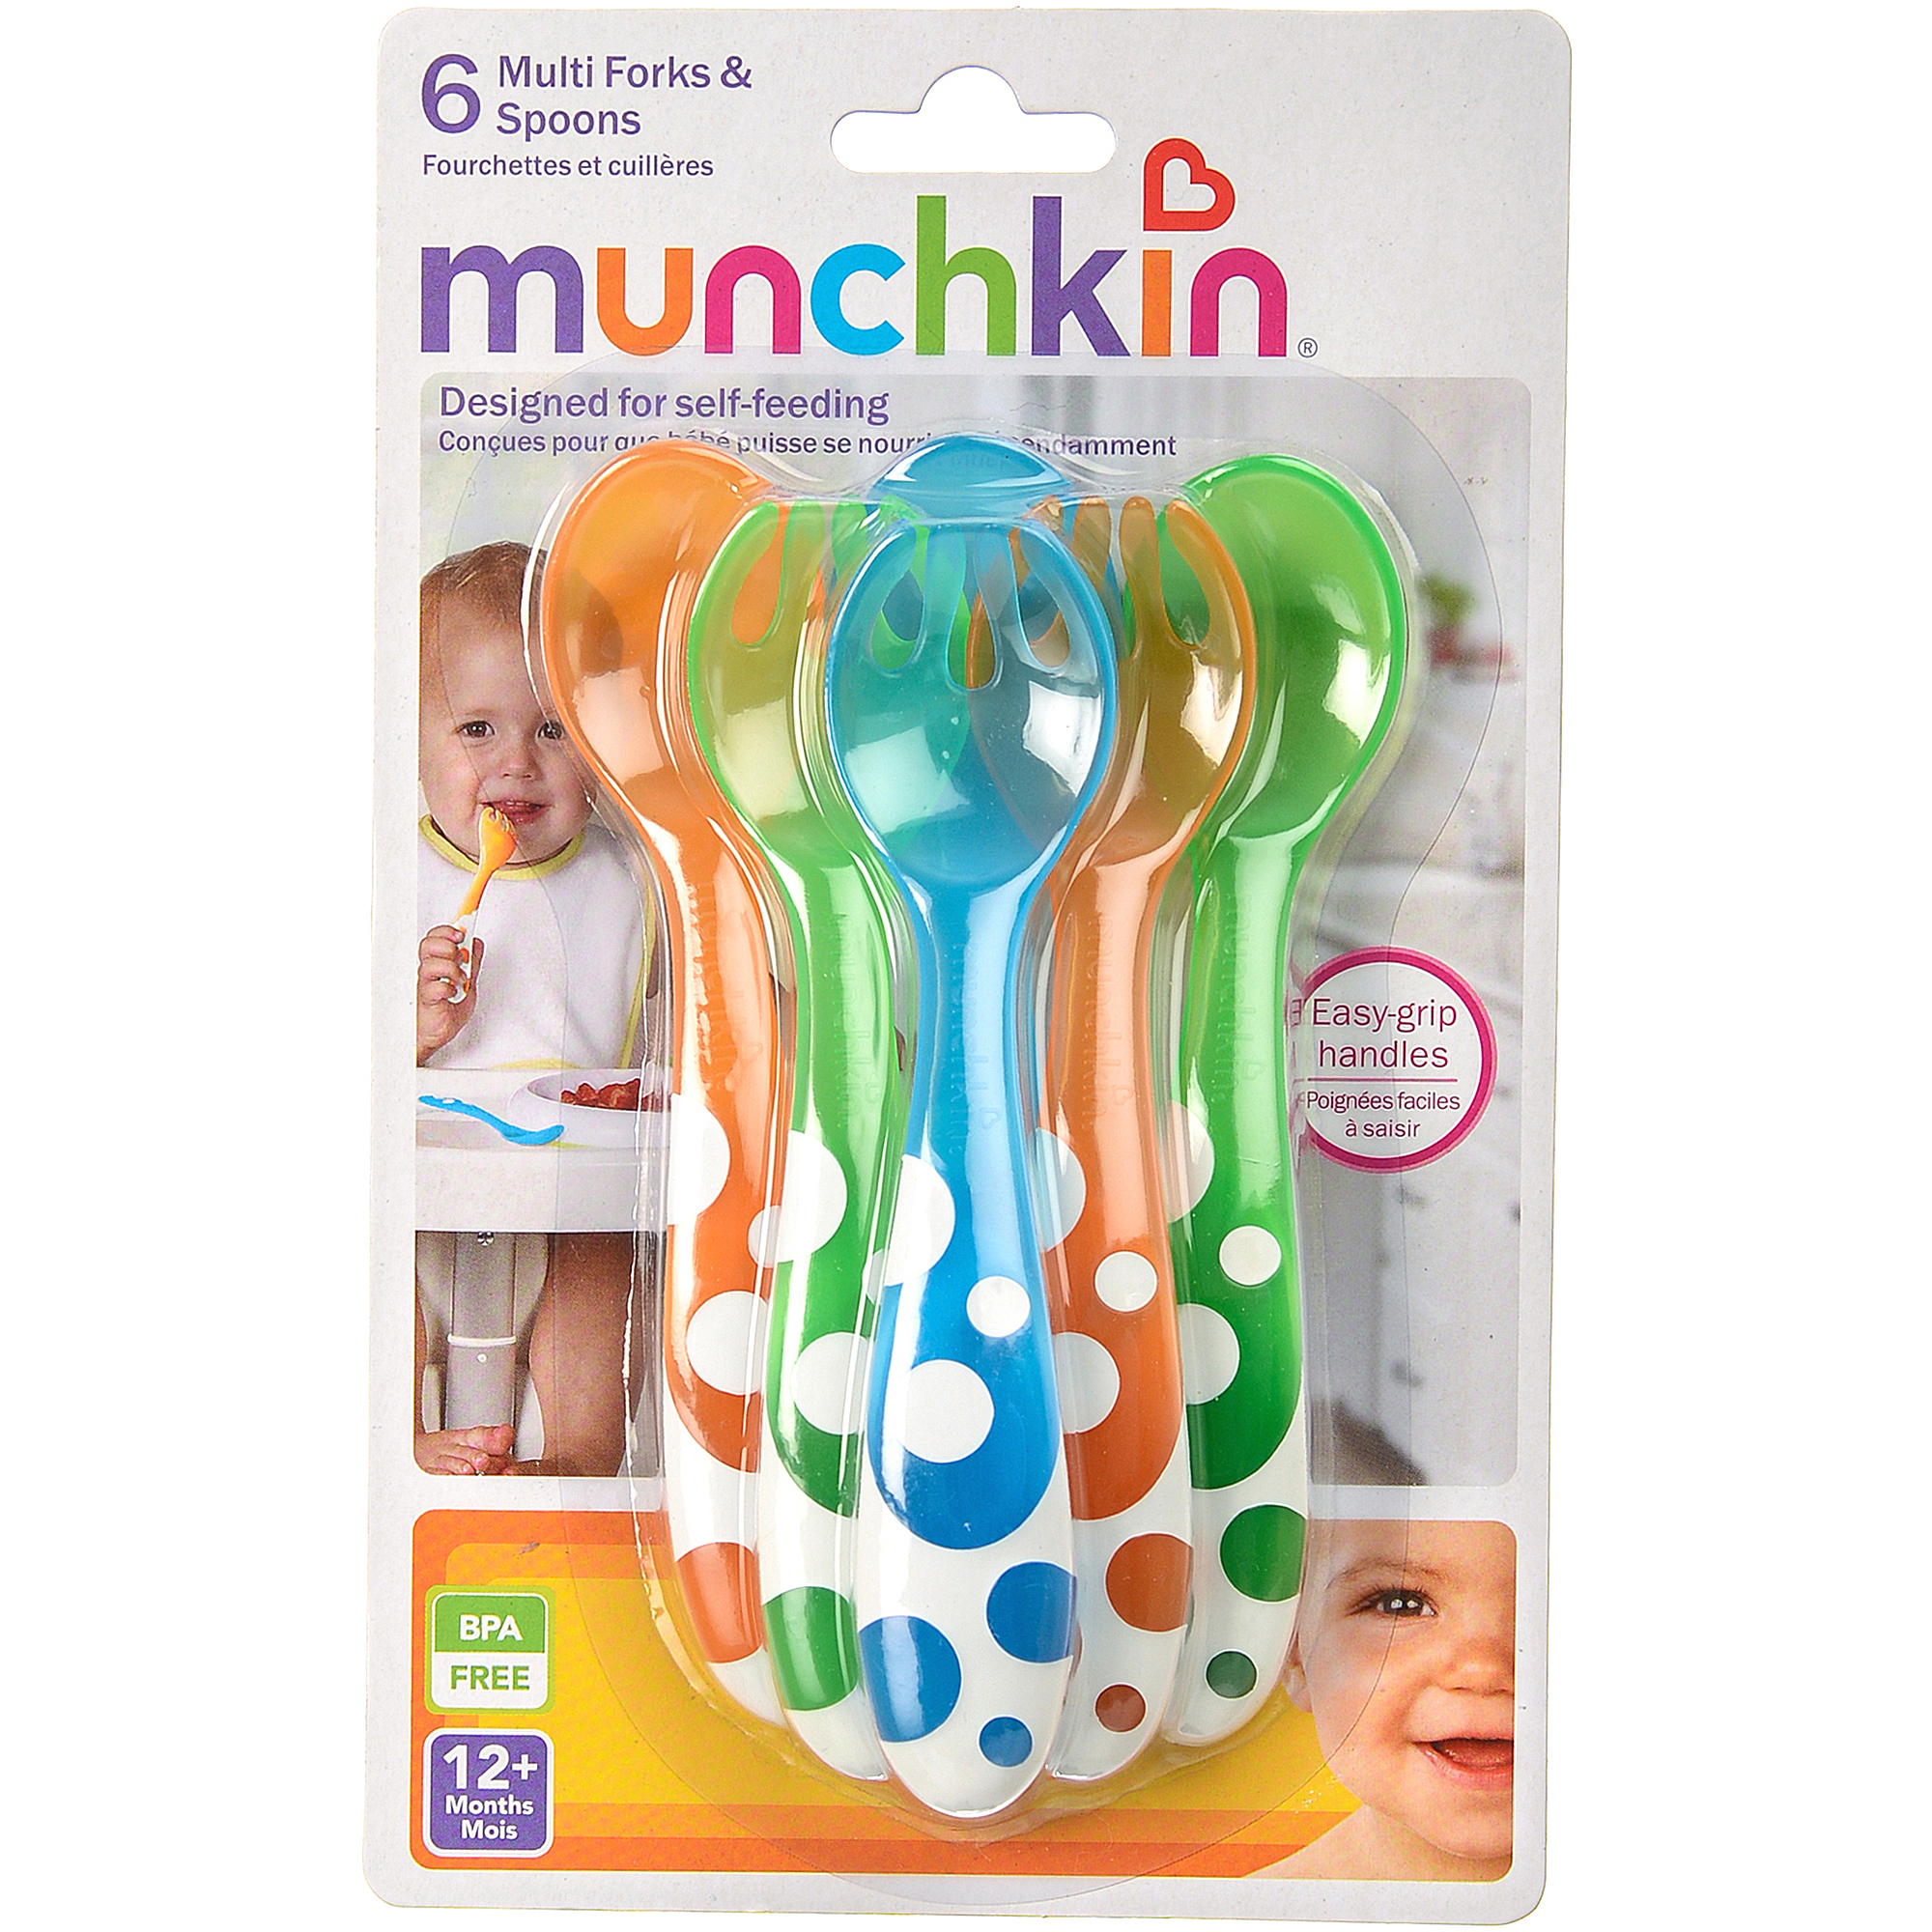 Munchkin Multi Forks and Spoons, 6-Pack, BPA-Free